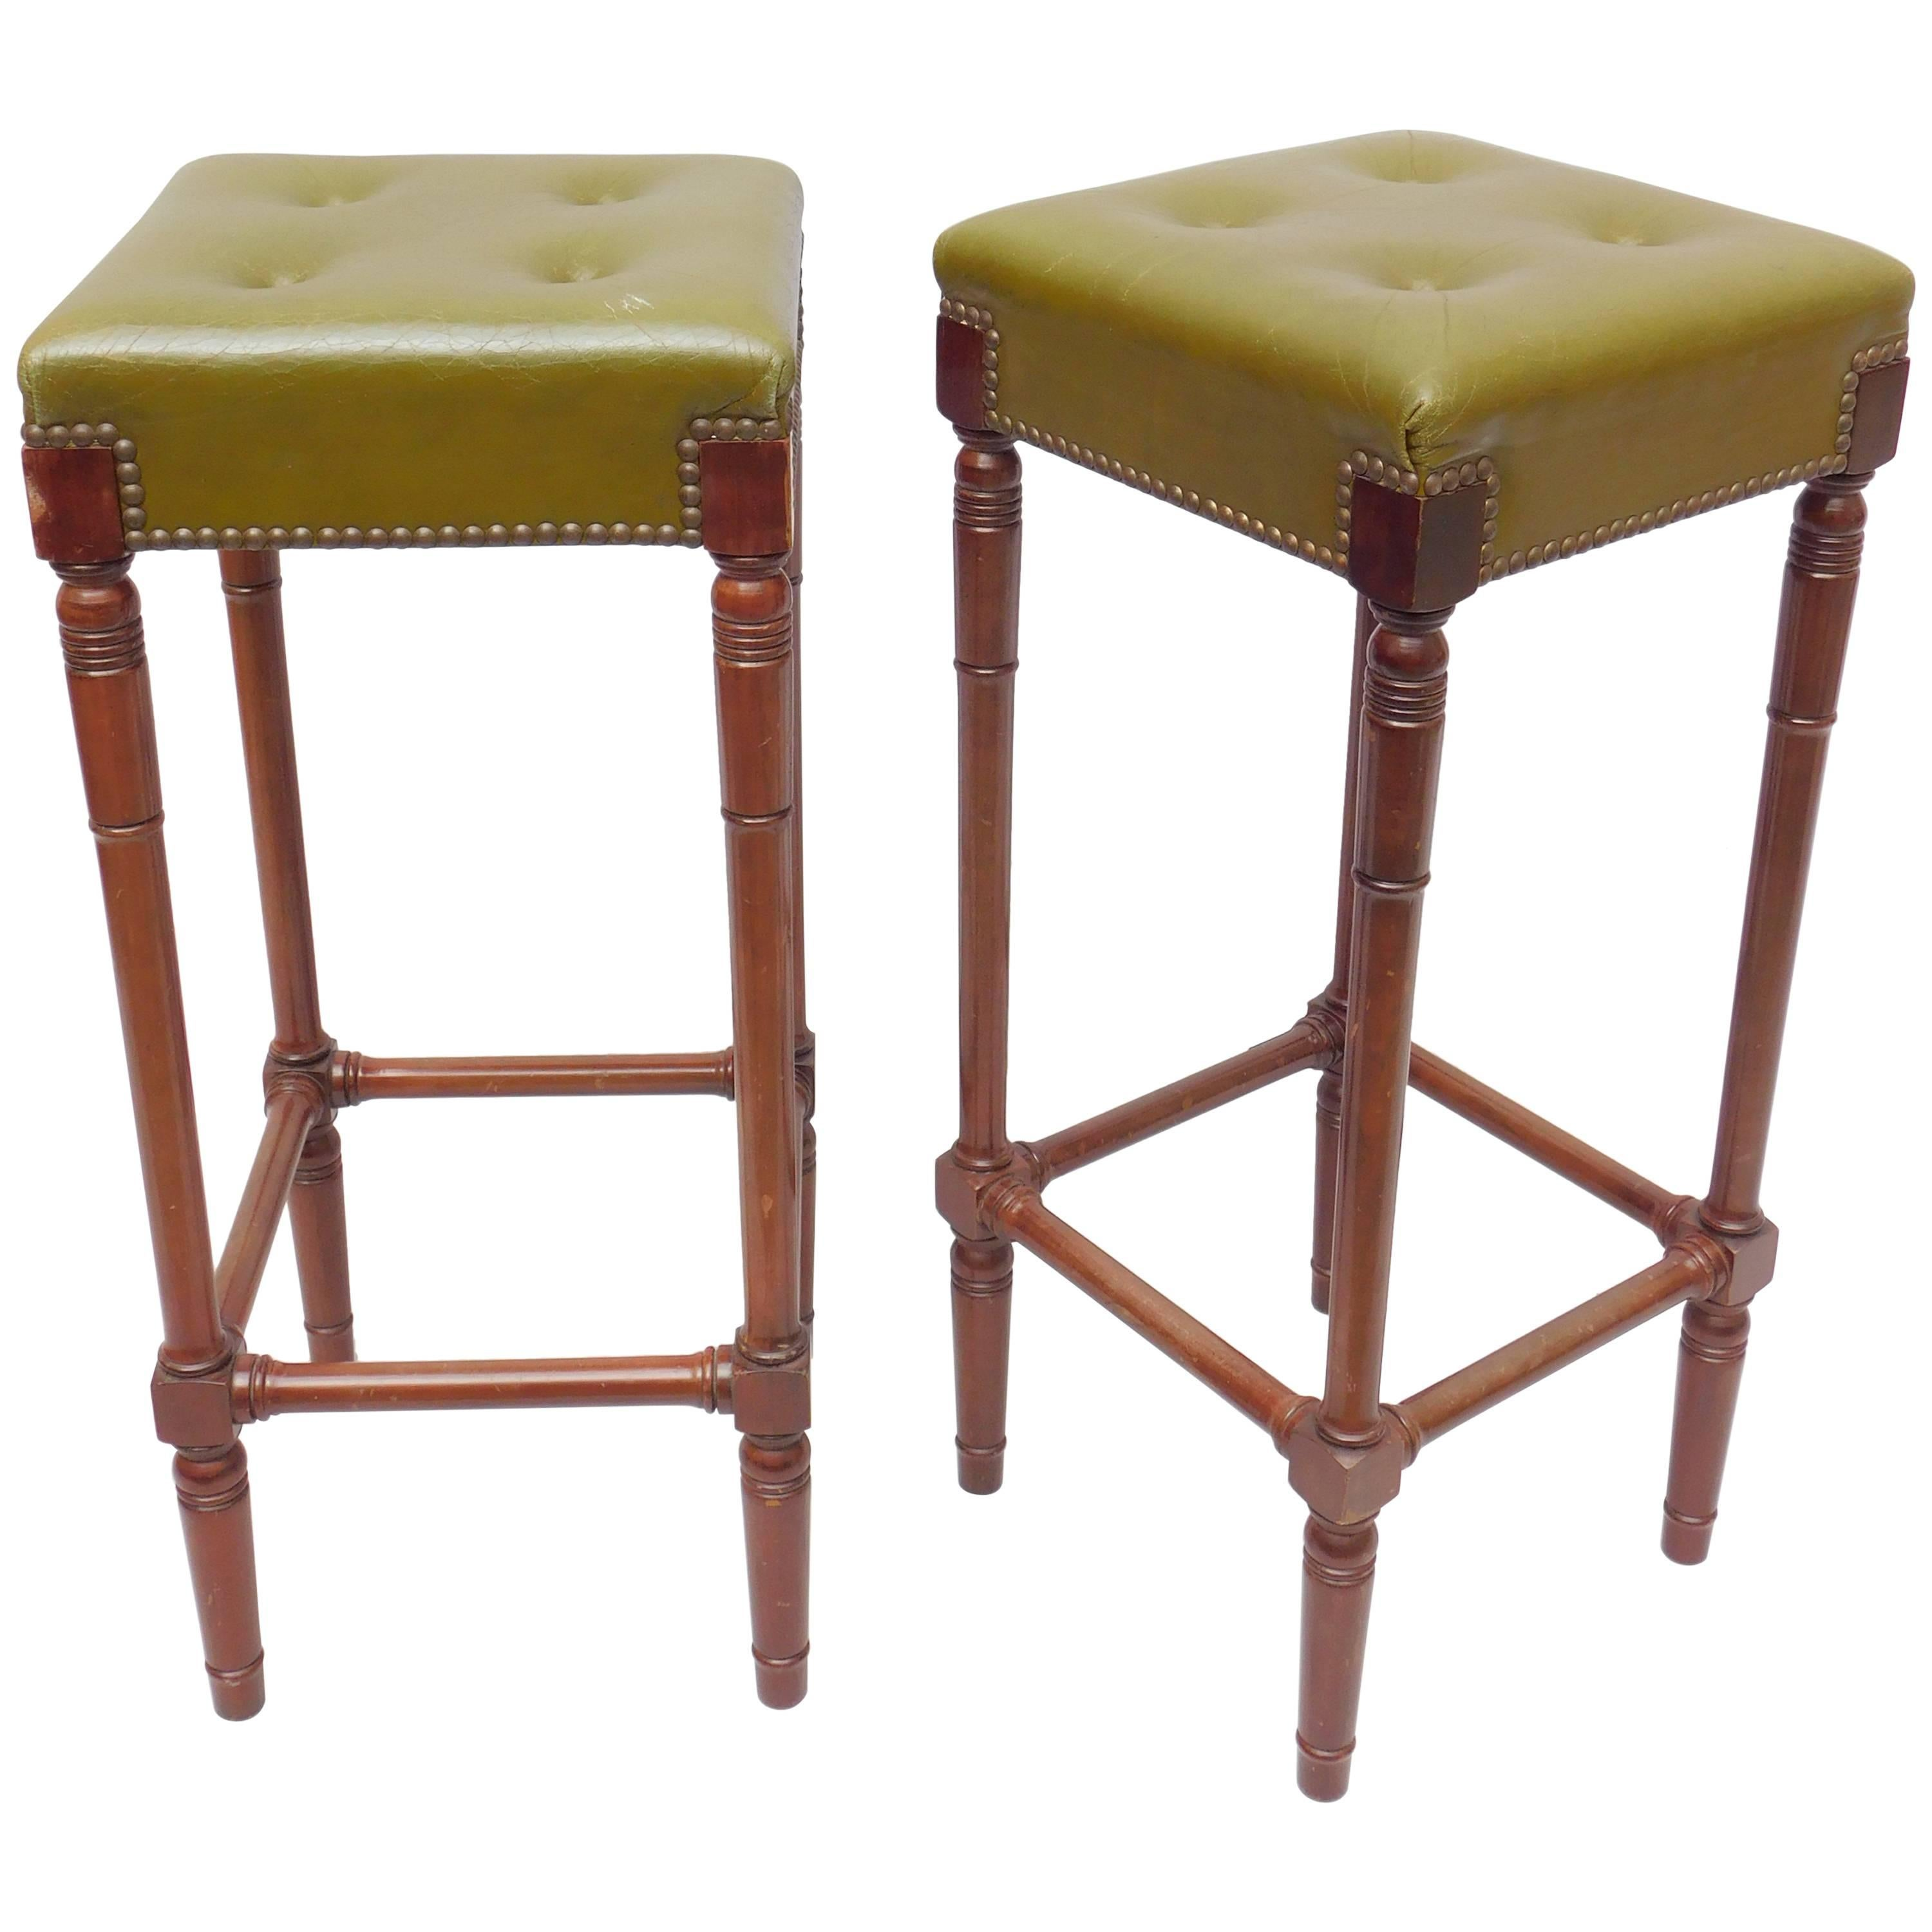 Pair Of Vintage Iron And Leather Bar Stools By Ilana Goor For Sale At  1stdibs